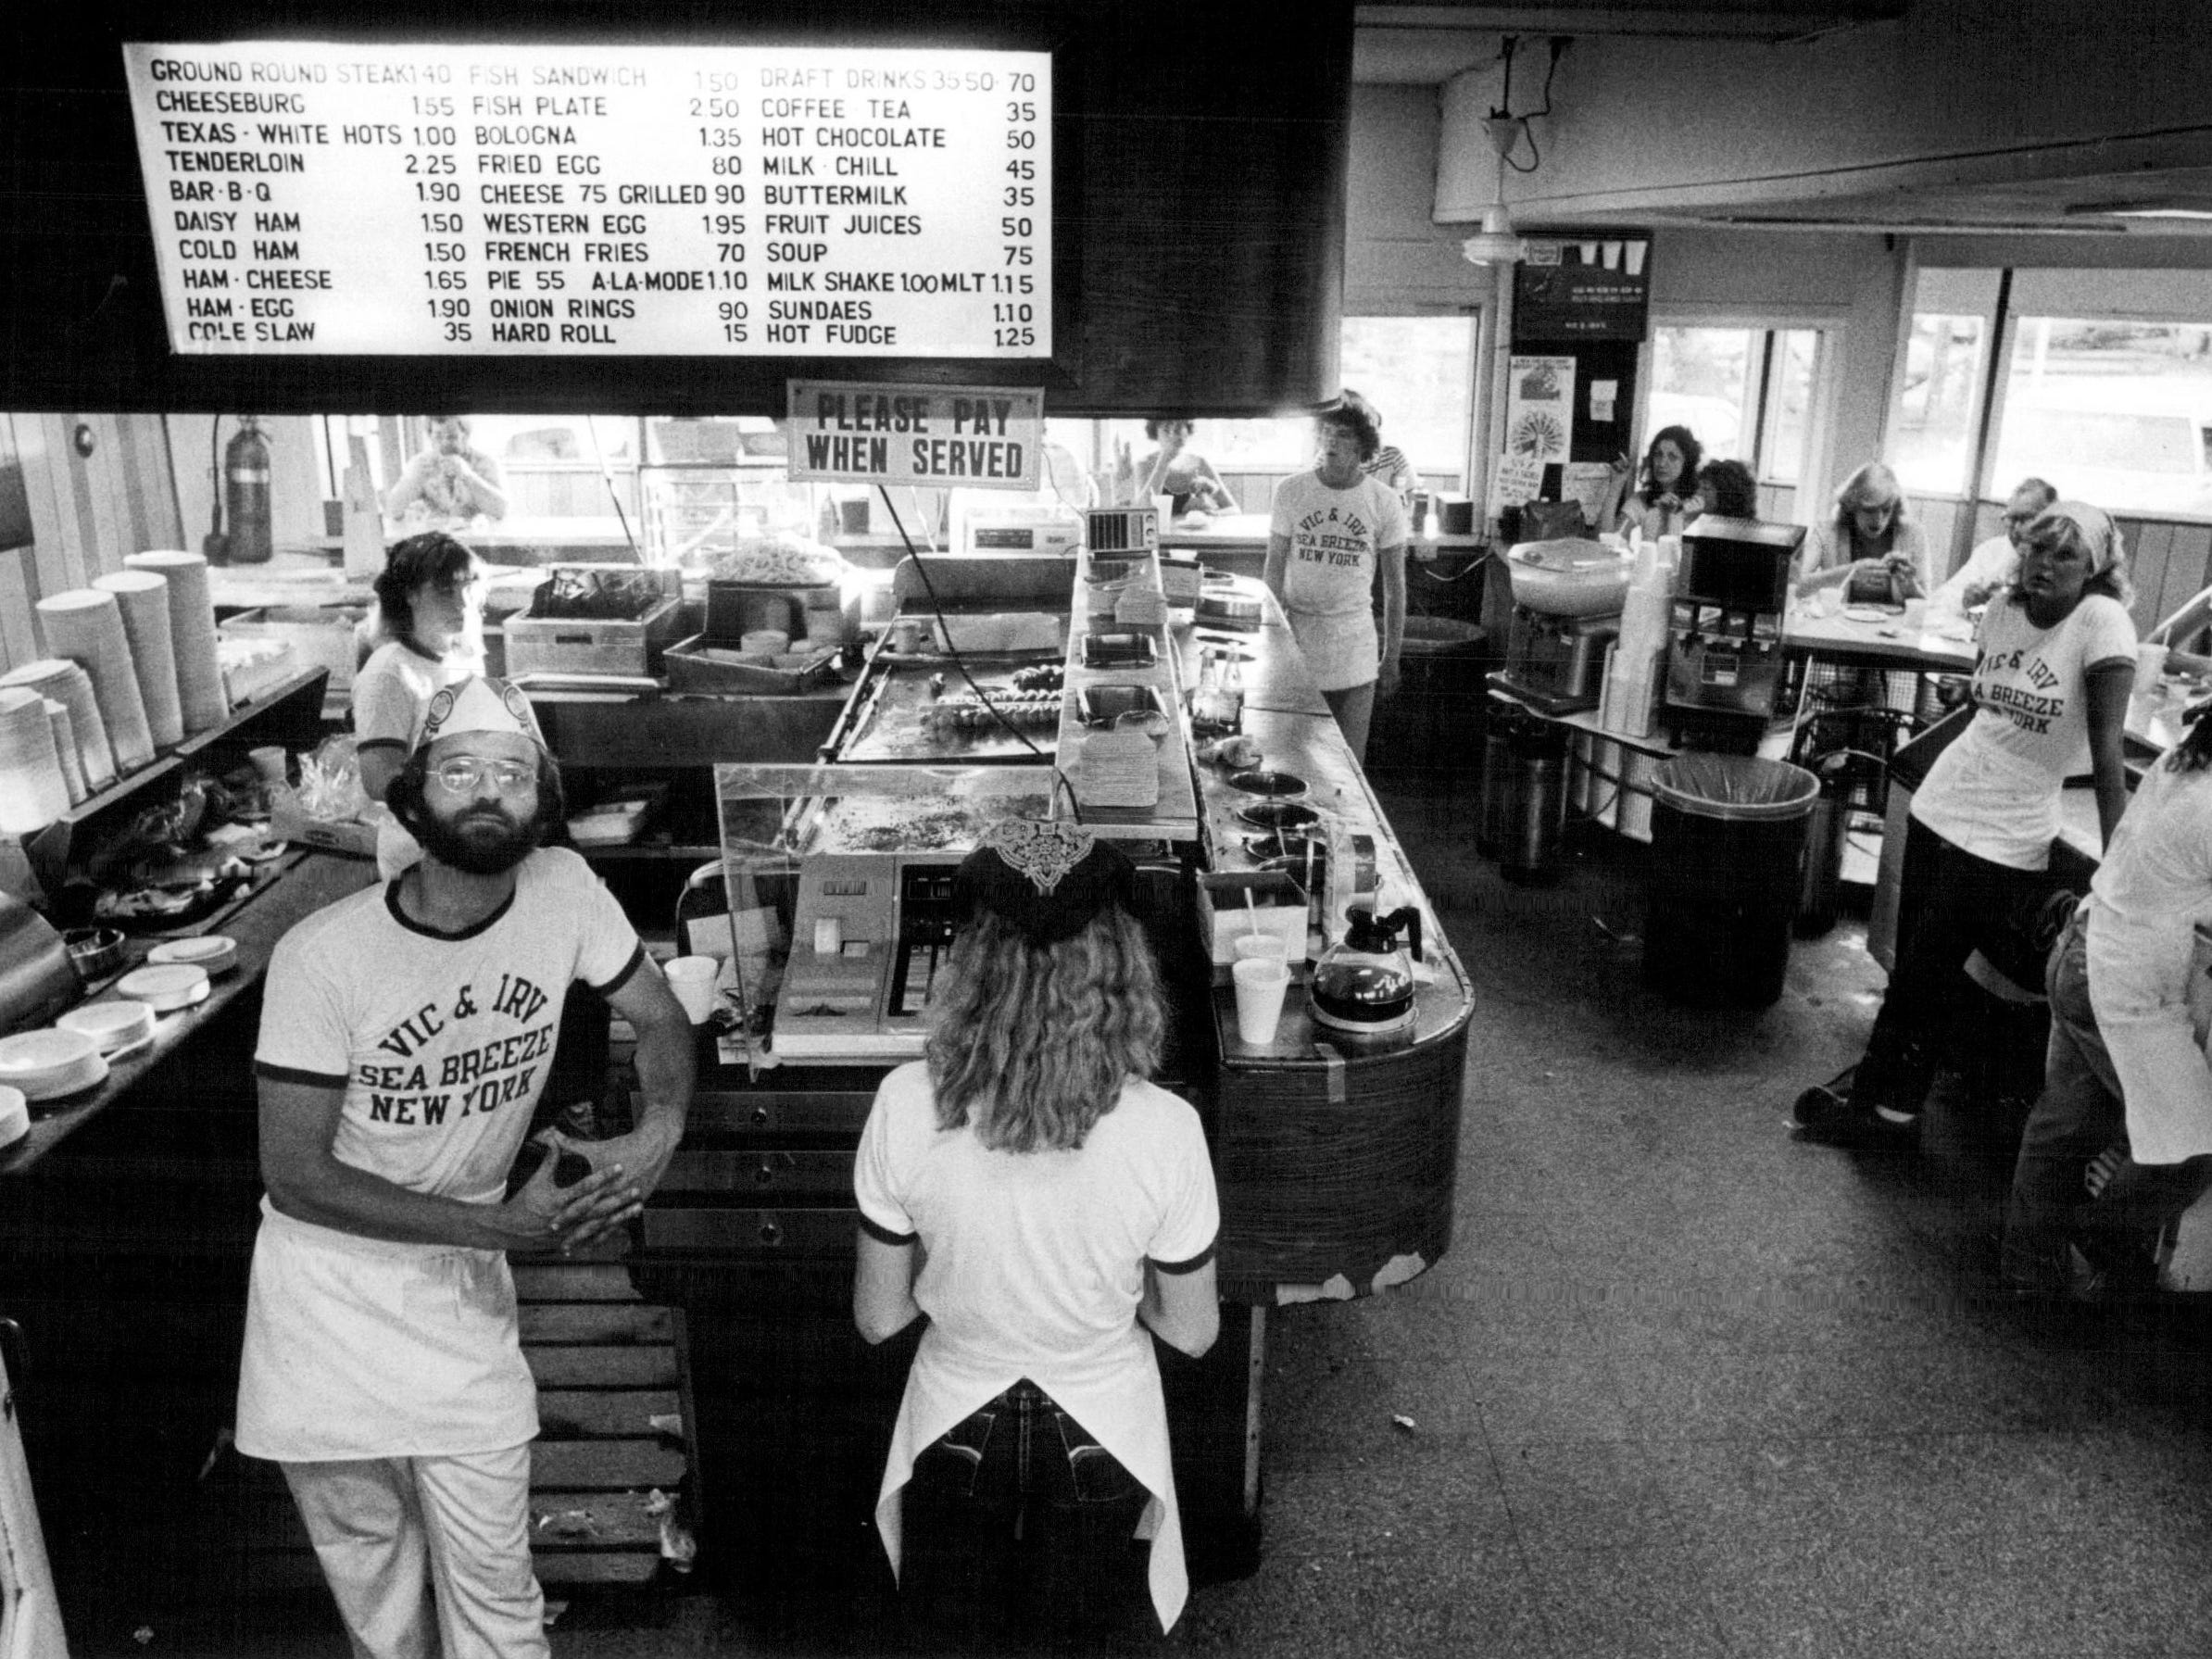 This 1982 photo shows the interior of Vic & Irv's restaurant.